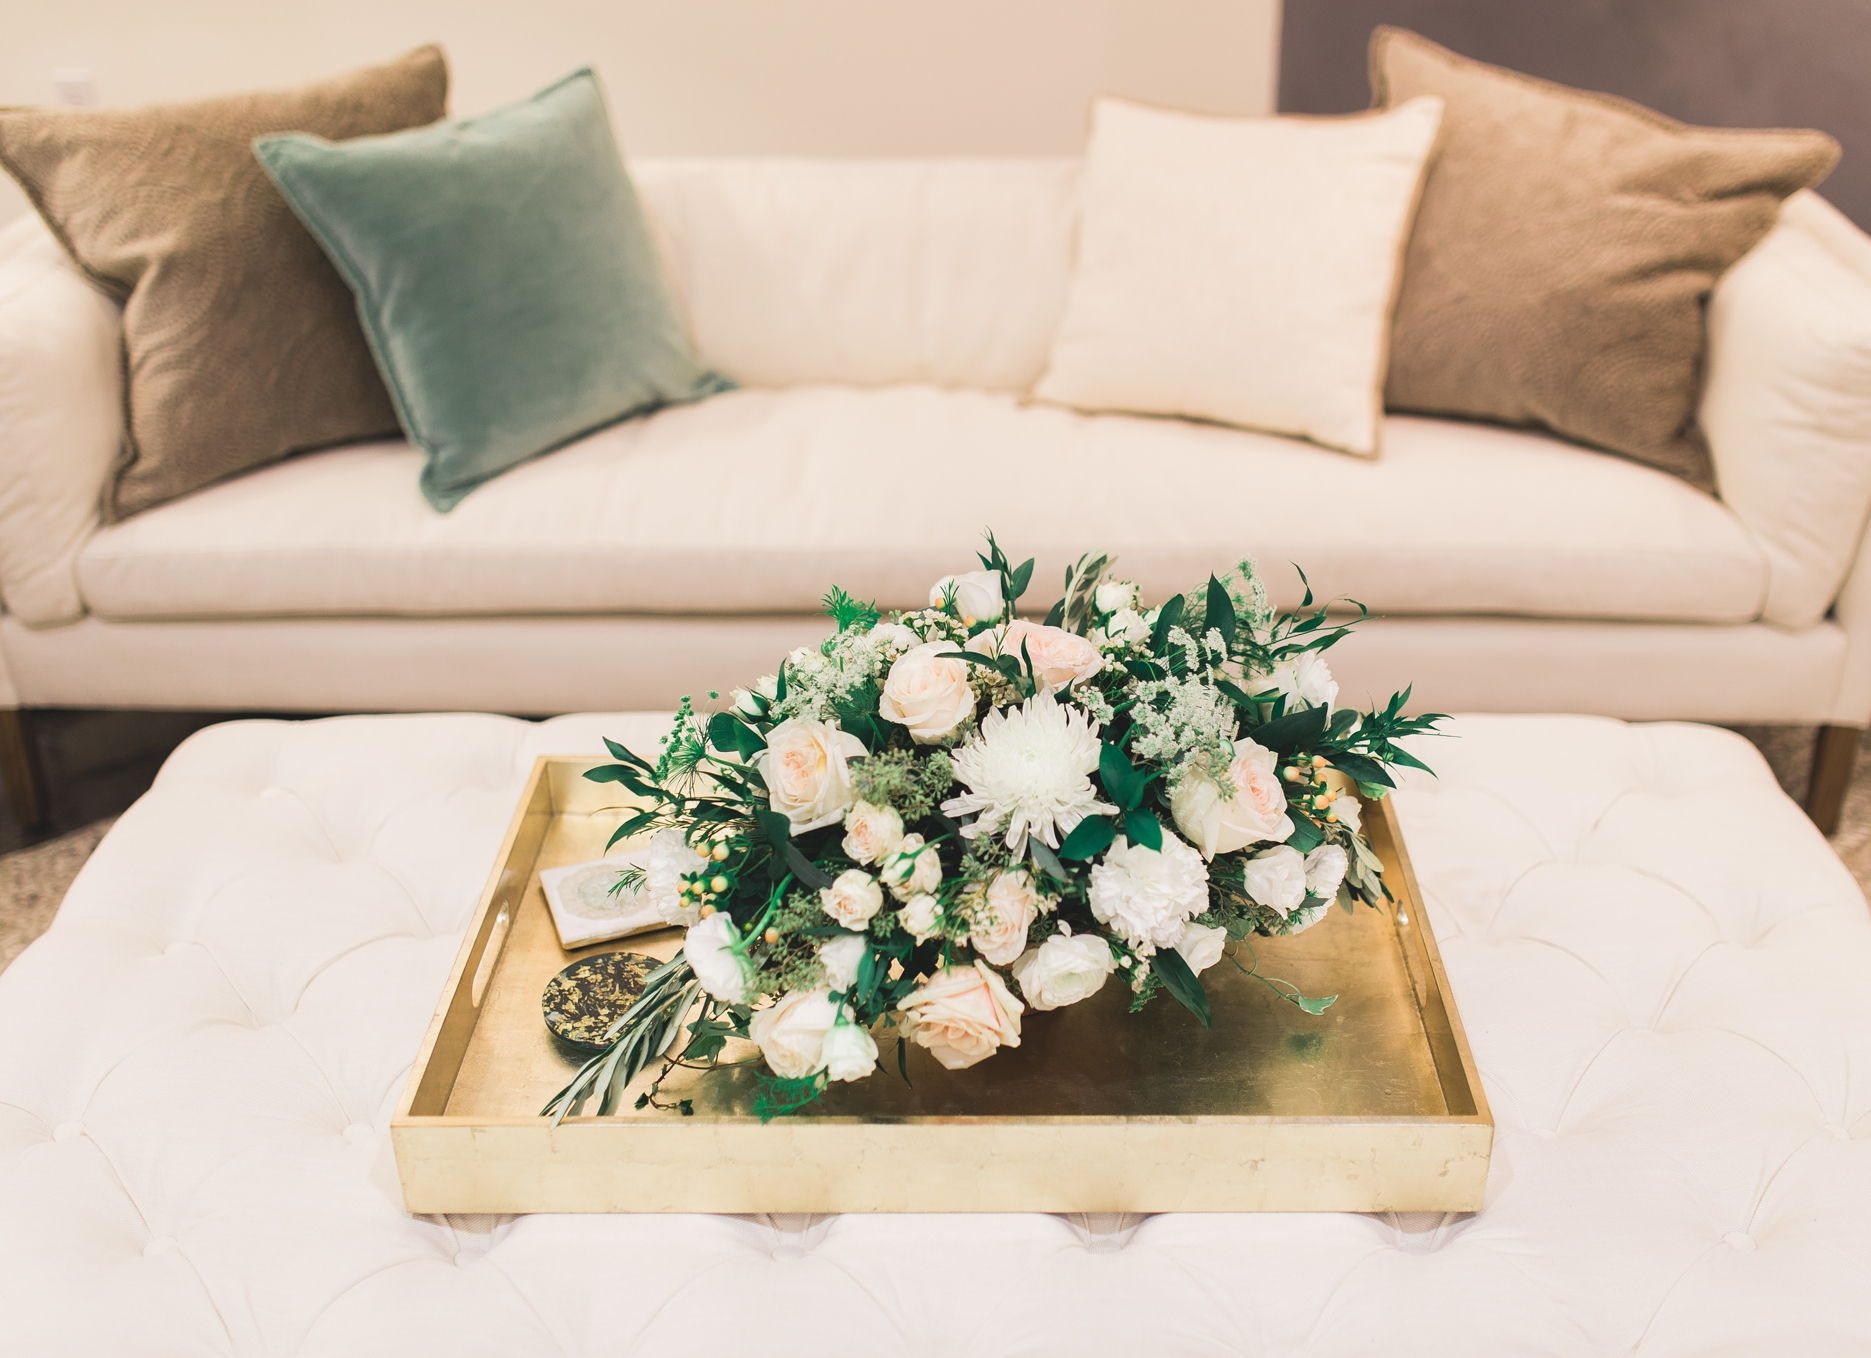 Image by Victoria Selman; Florals by Kruse & Vieira Events